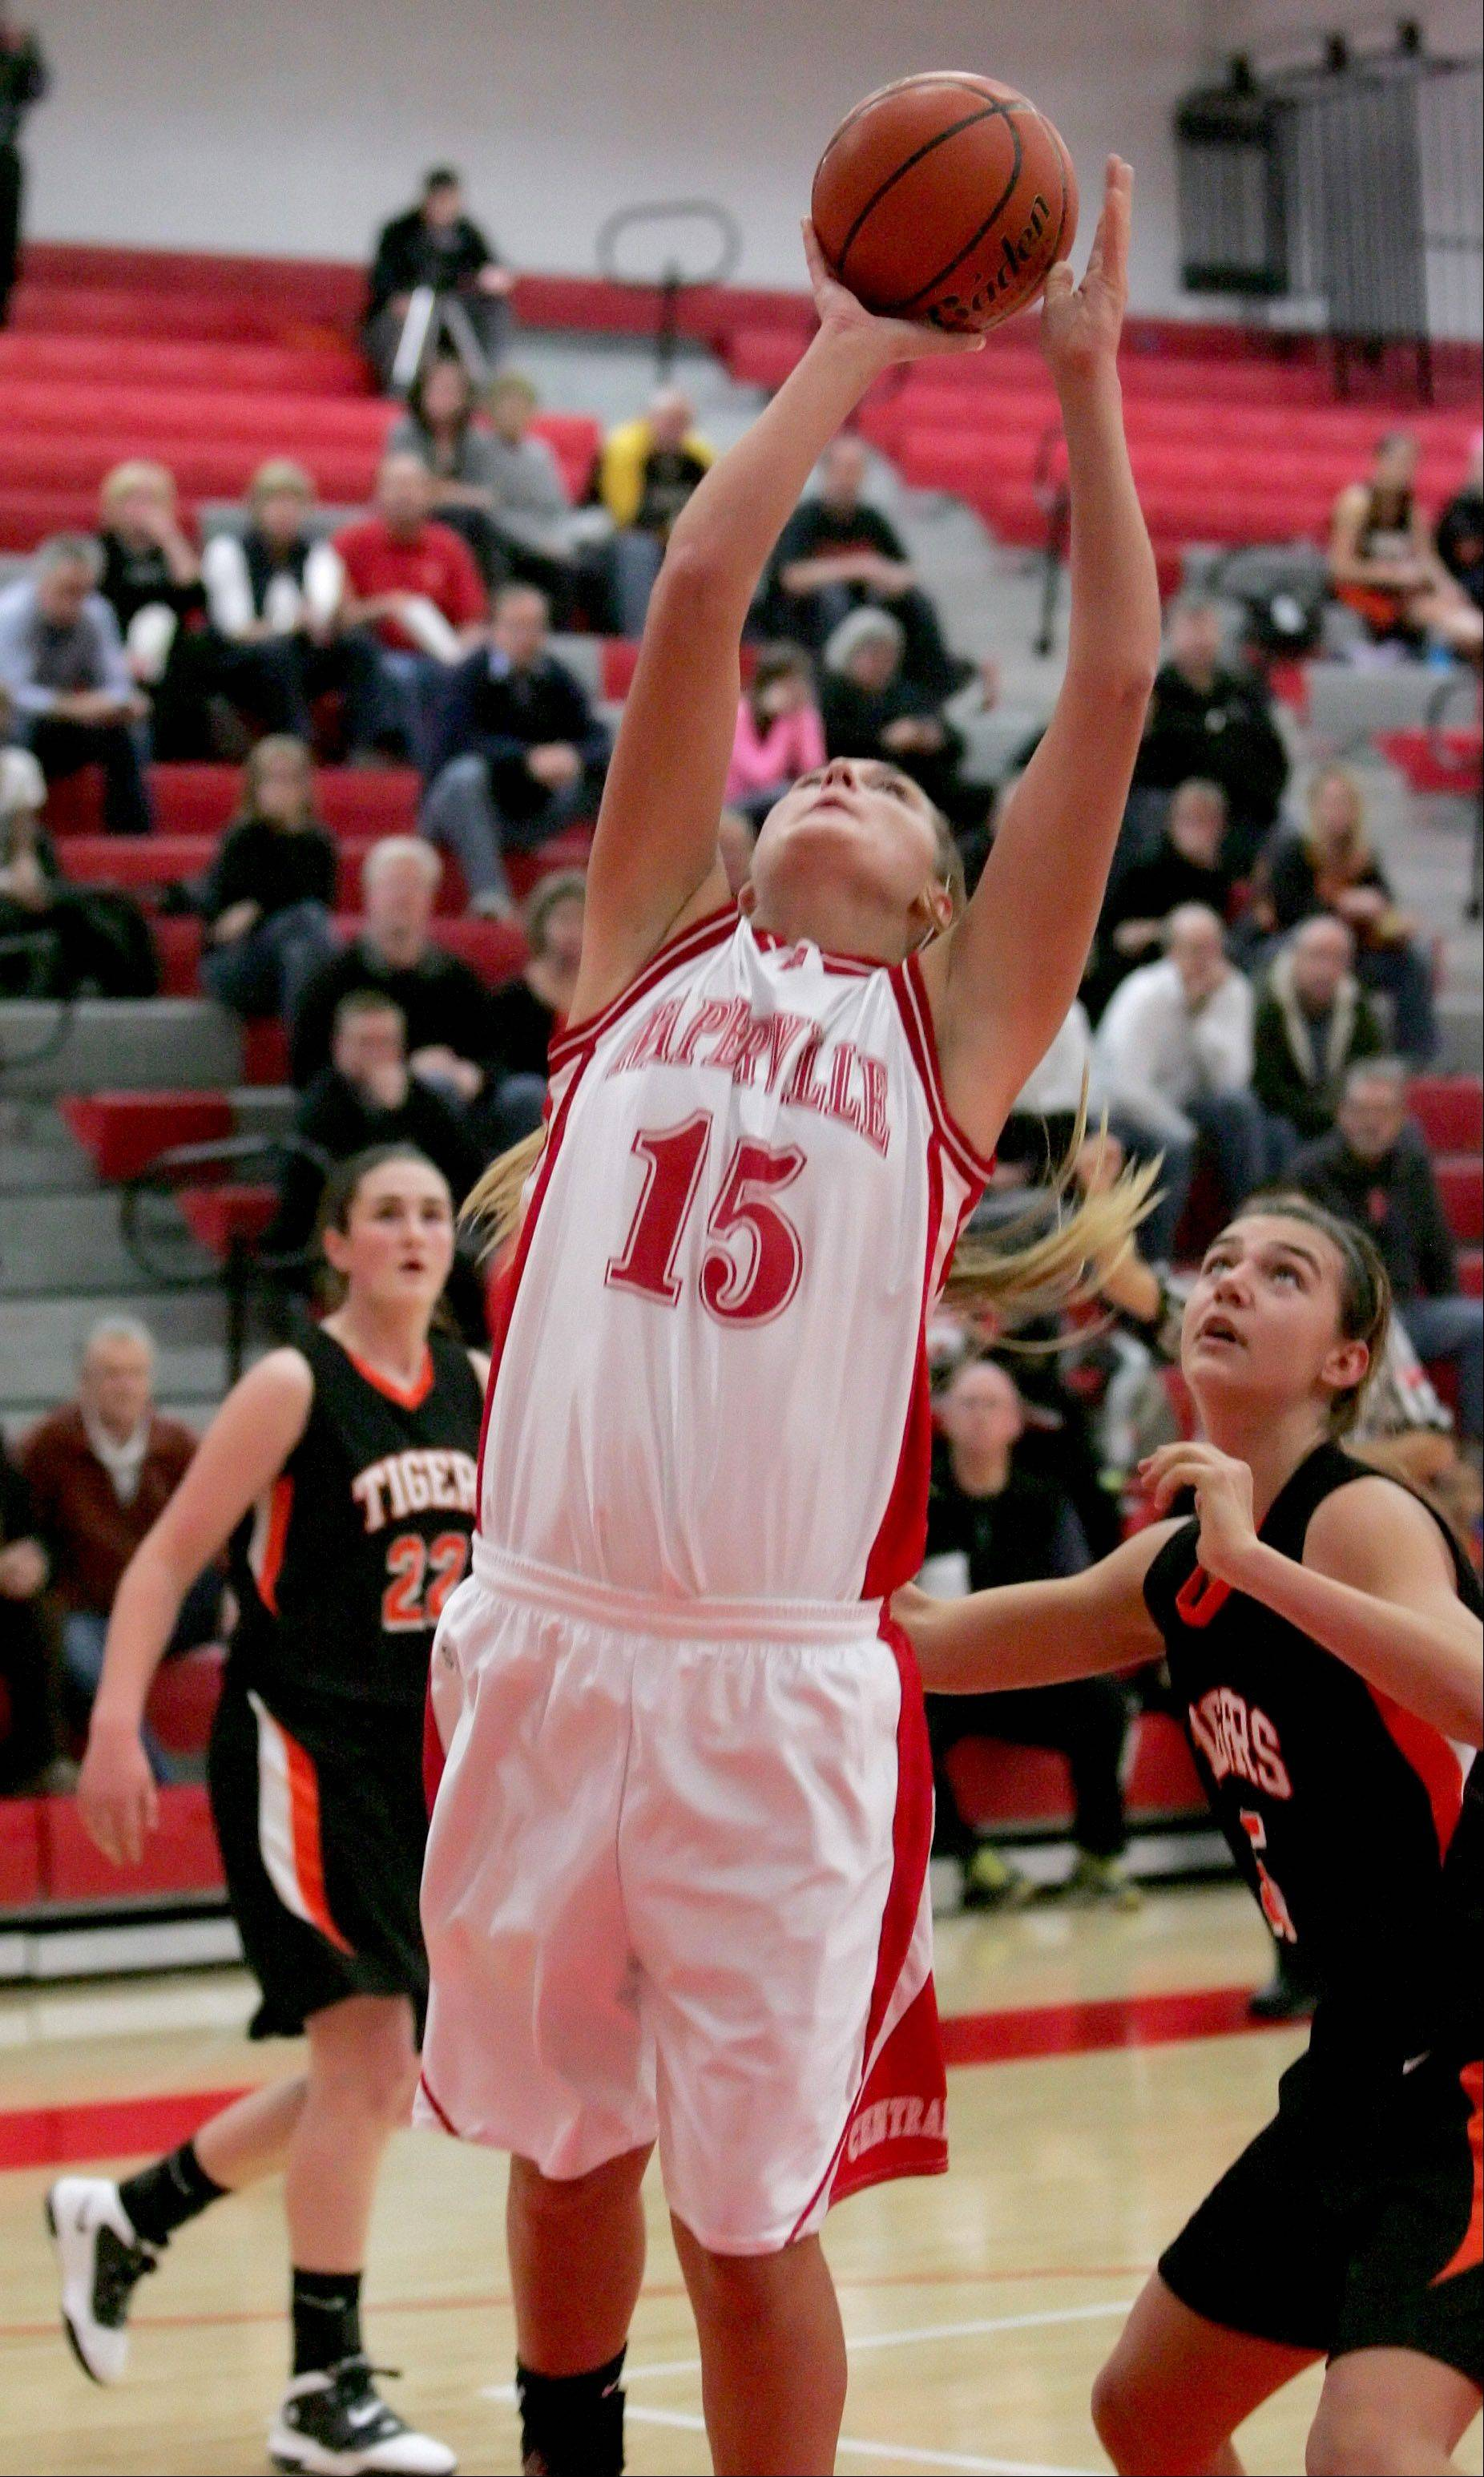 Victoria Trowbridge of Naperville Central shoots the ball against Wheaton Warrenville South.